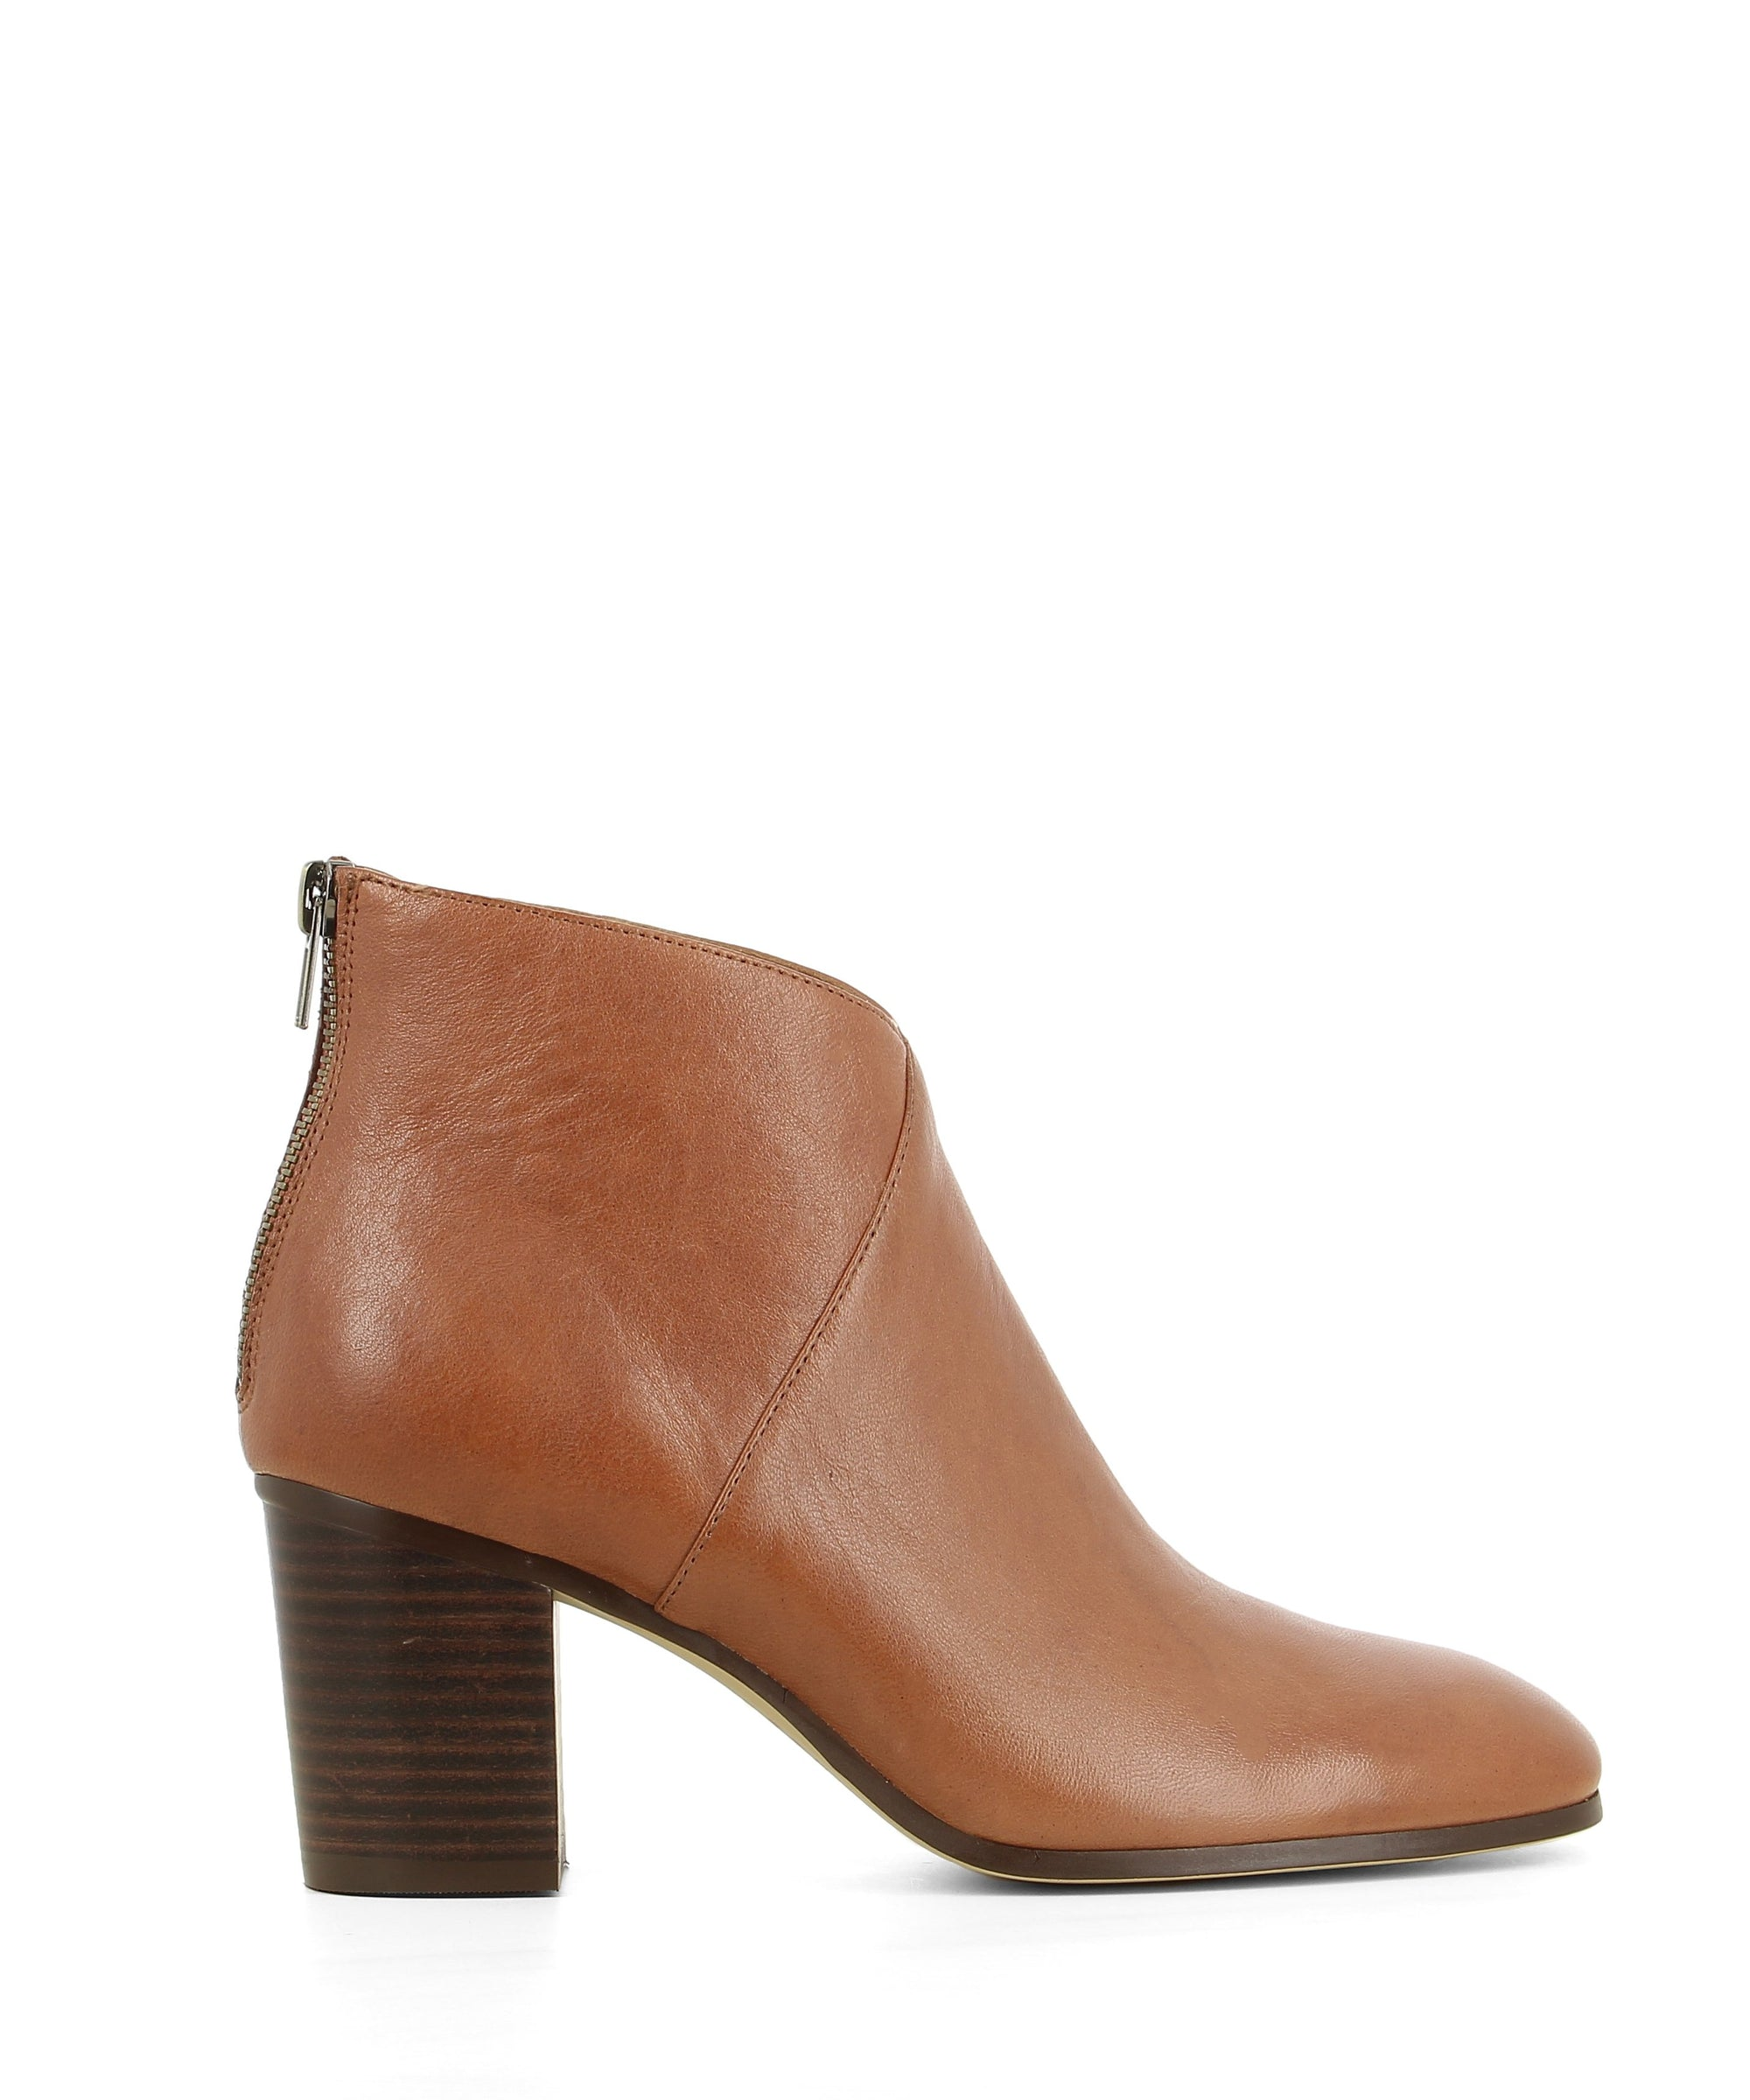 A brown leather ankle boot that has zipper closure on the back of the heel and features a 6.5cm block heel and a soft square toe by Django & Juliette.